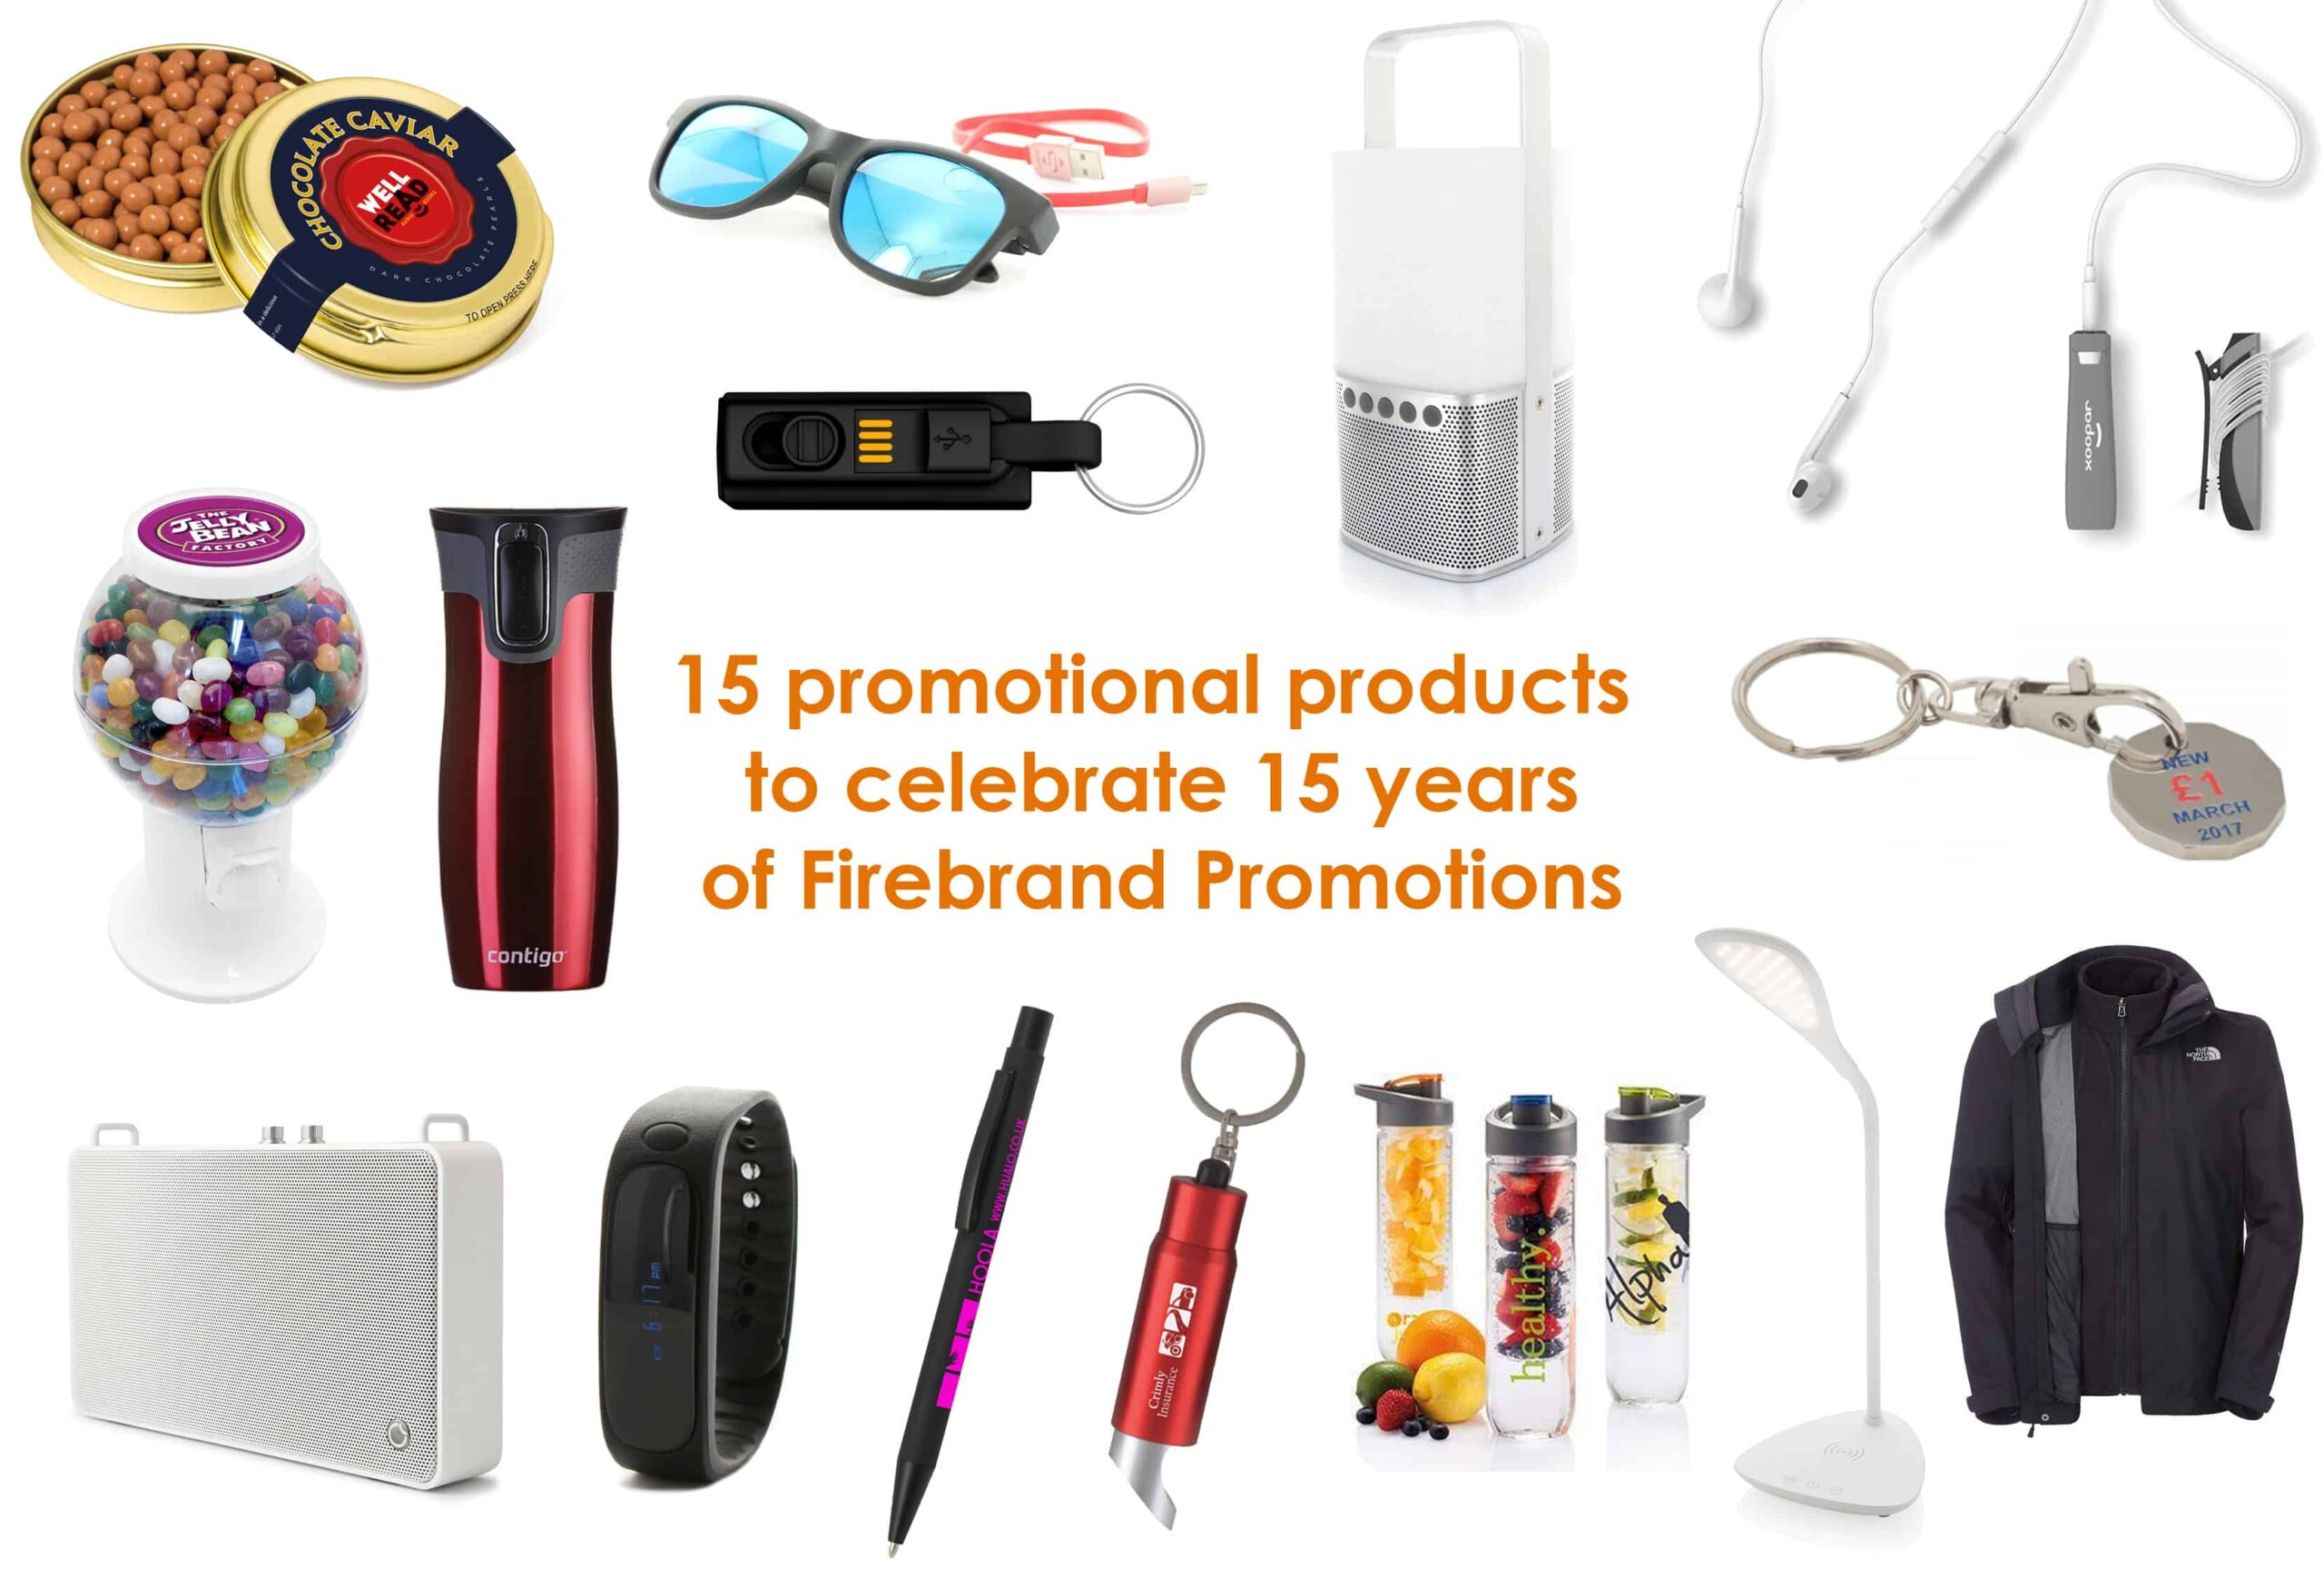 15 Promotional Products To Celebrate 15 Years